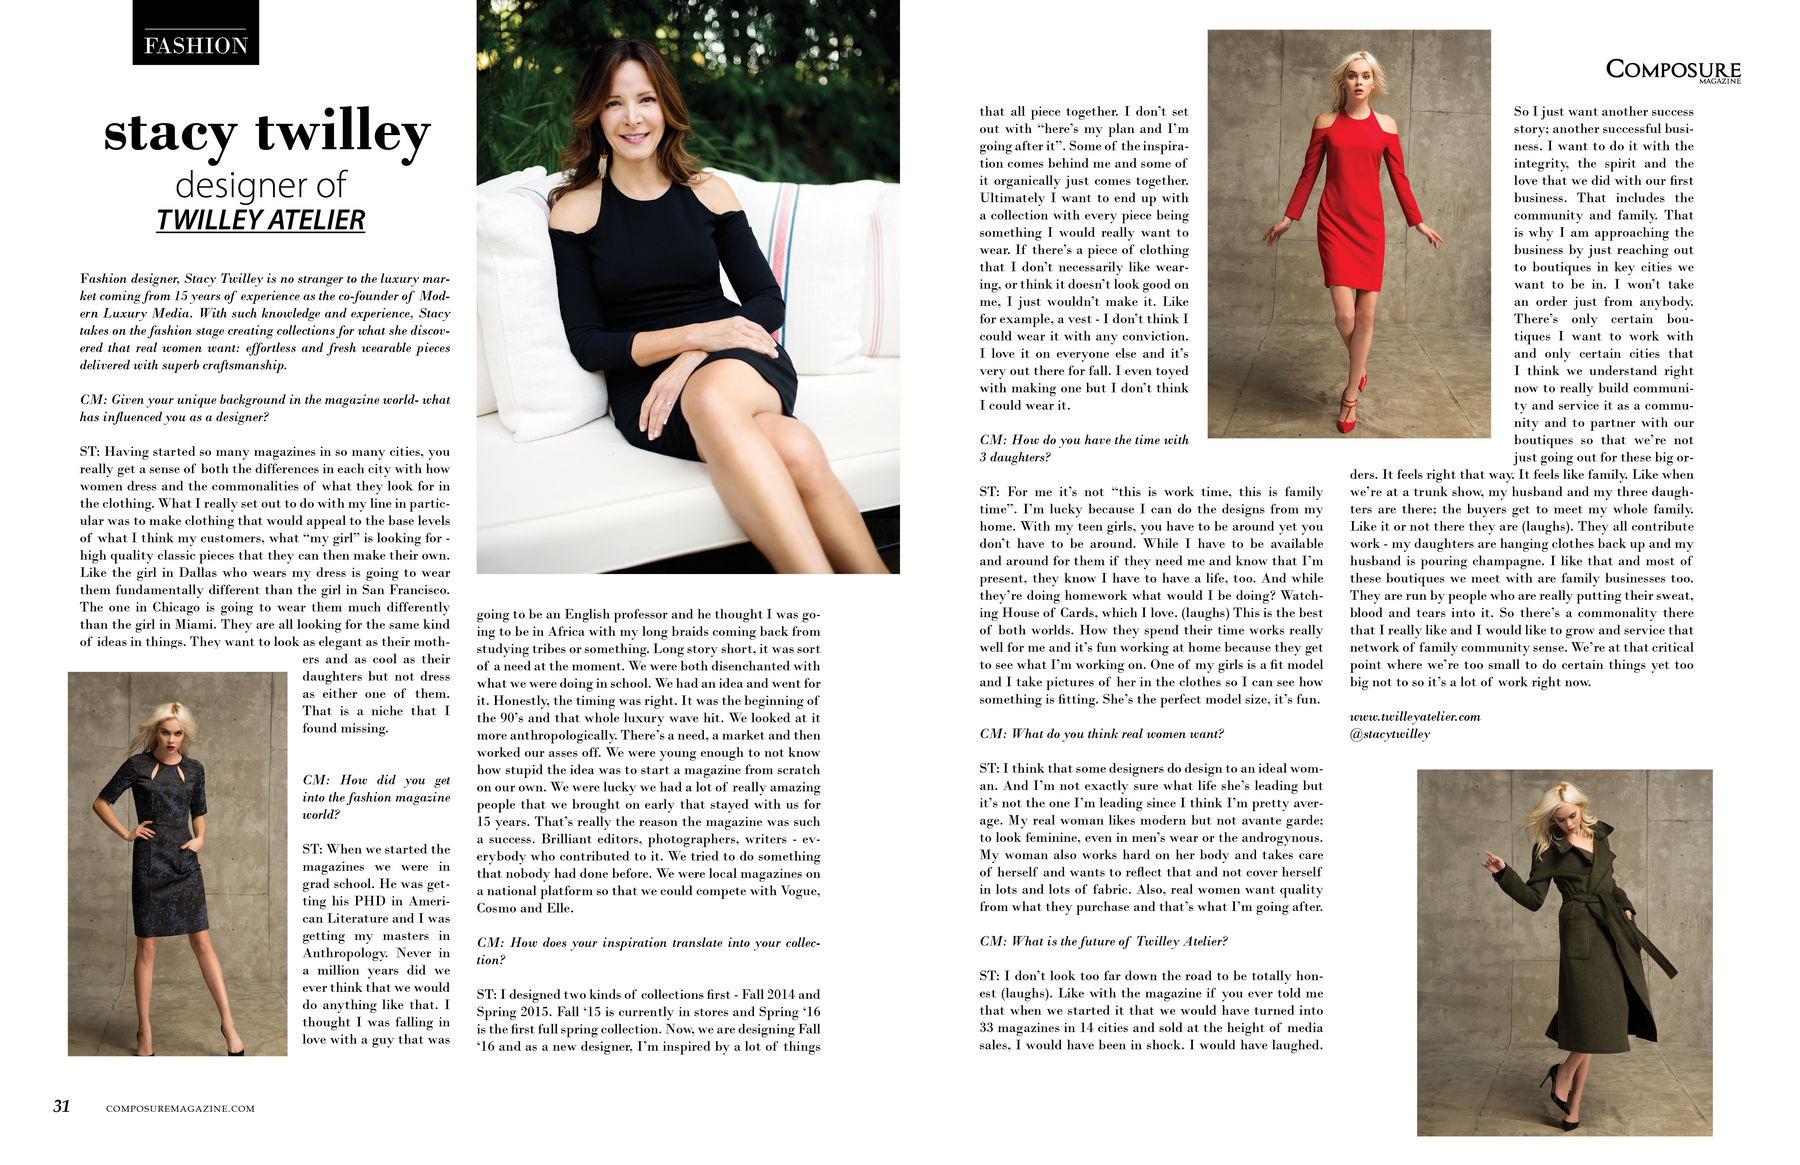 Interview with fashion designer Stacy Twilley of TWILLEY ATELIER